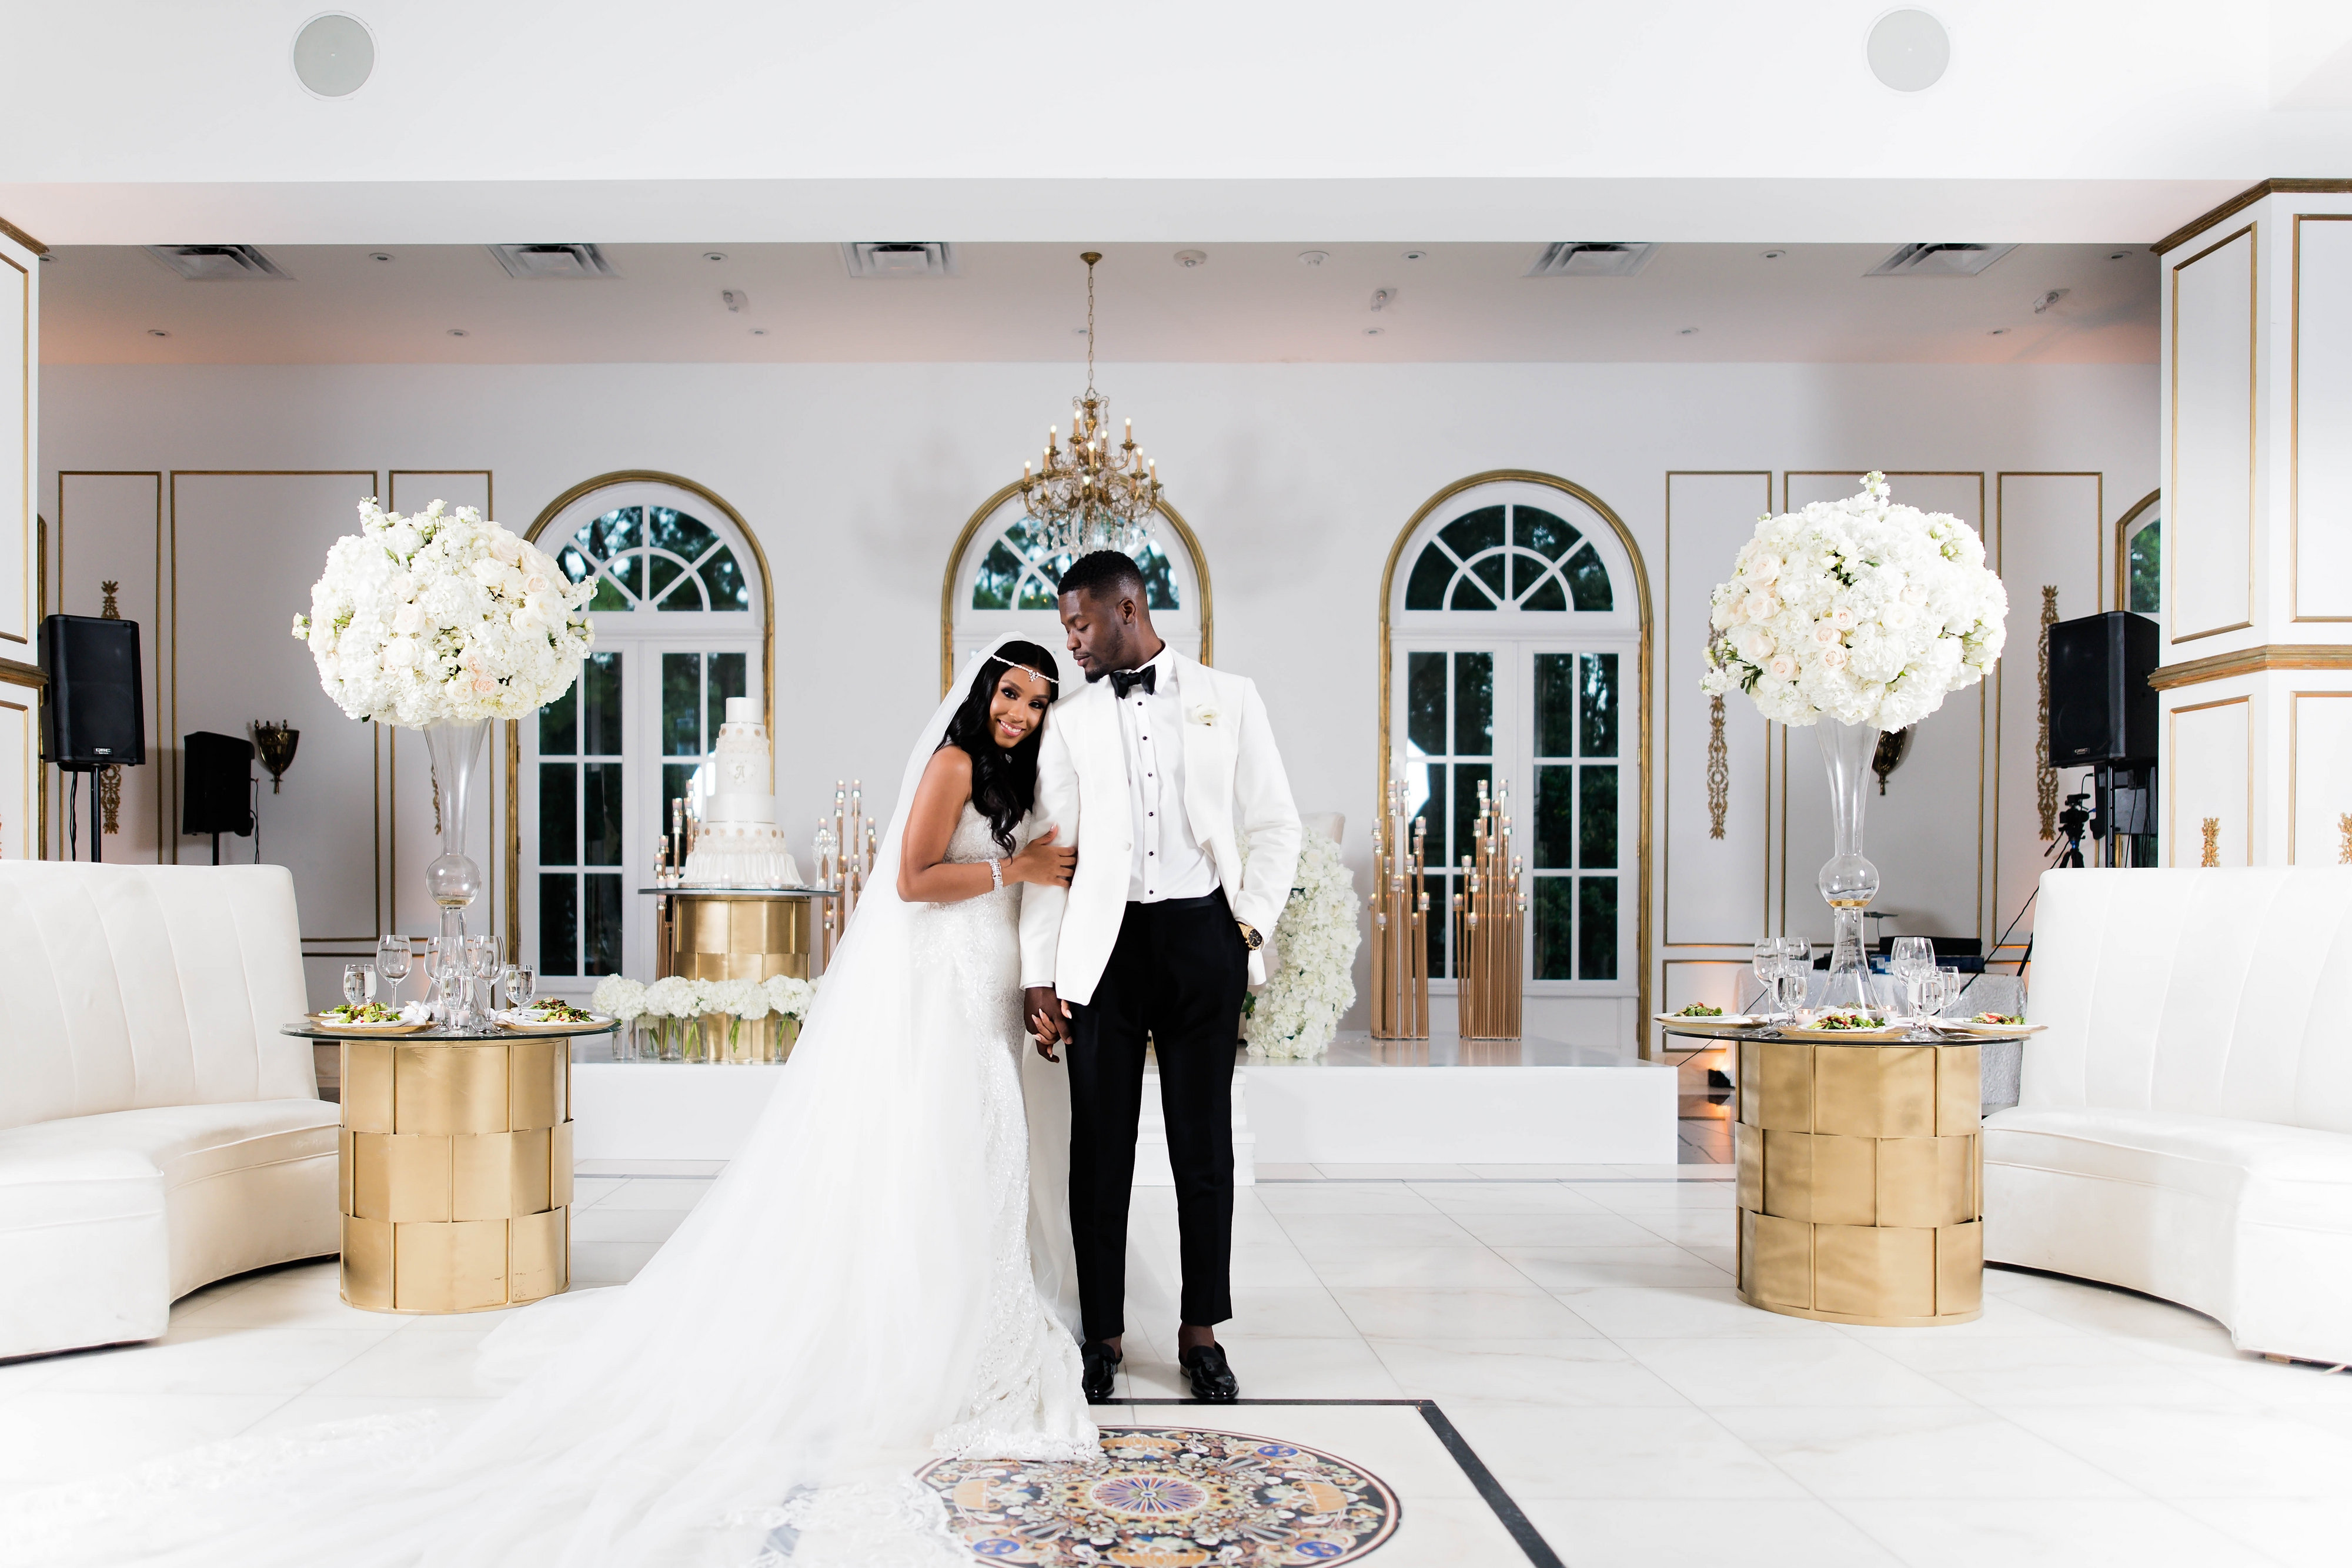 Luxury bride and groom photo at their white and gold wedding reception - Photography: Pharris Photos